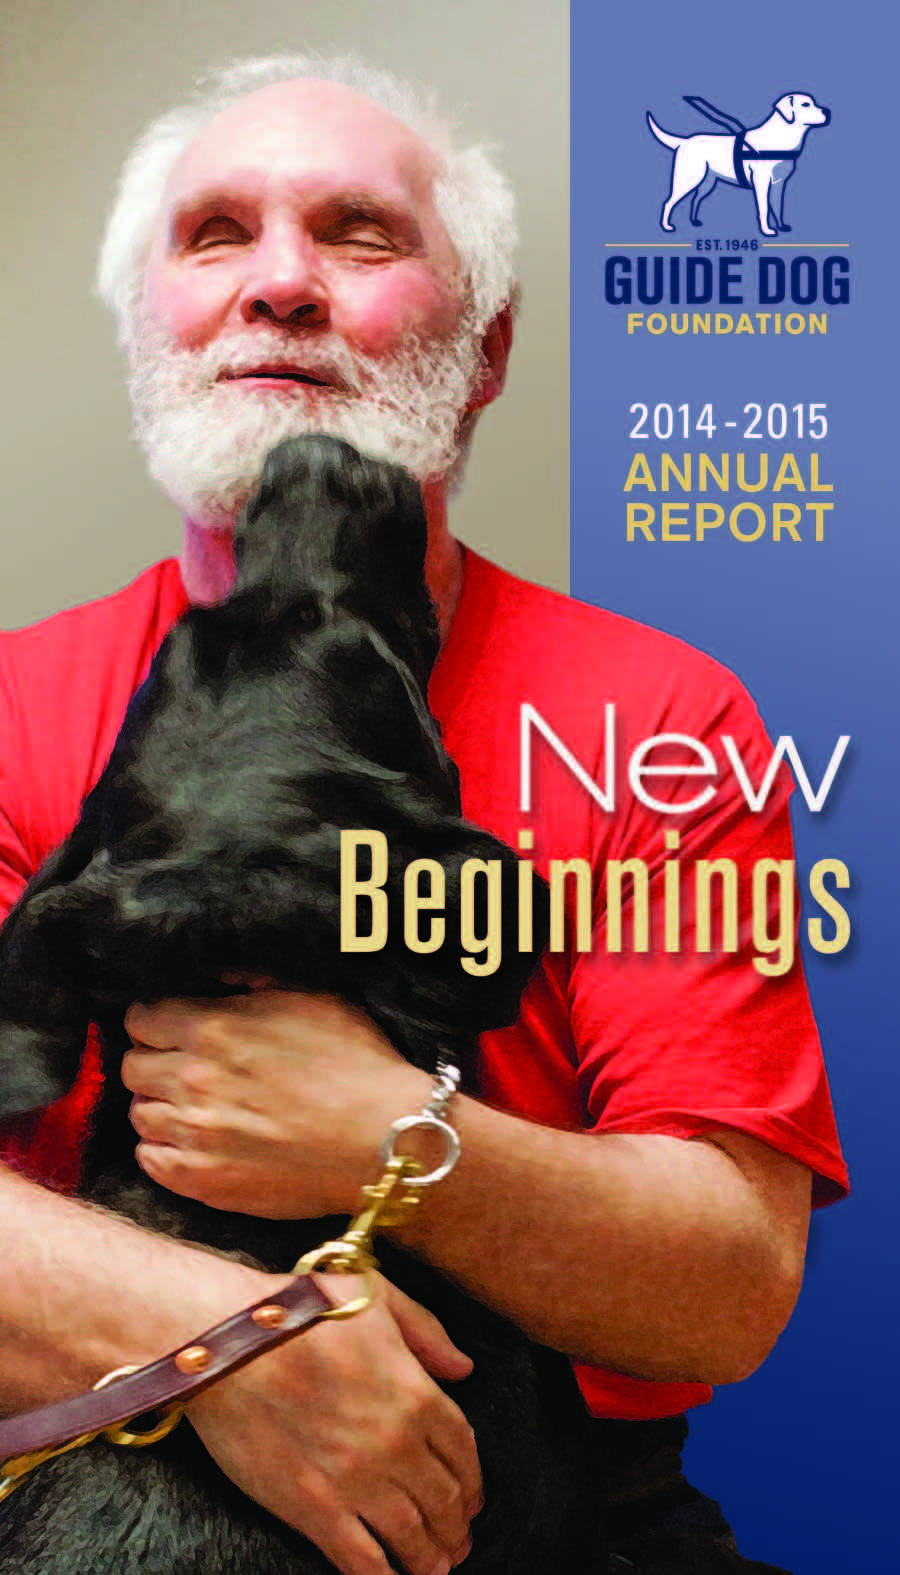 Click image to read the FY 2015 annual report.